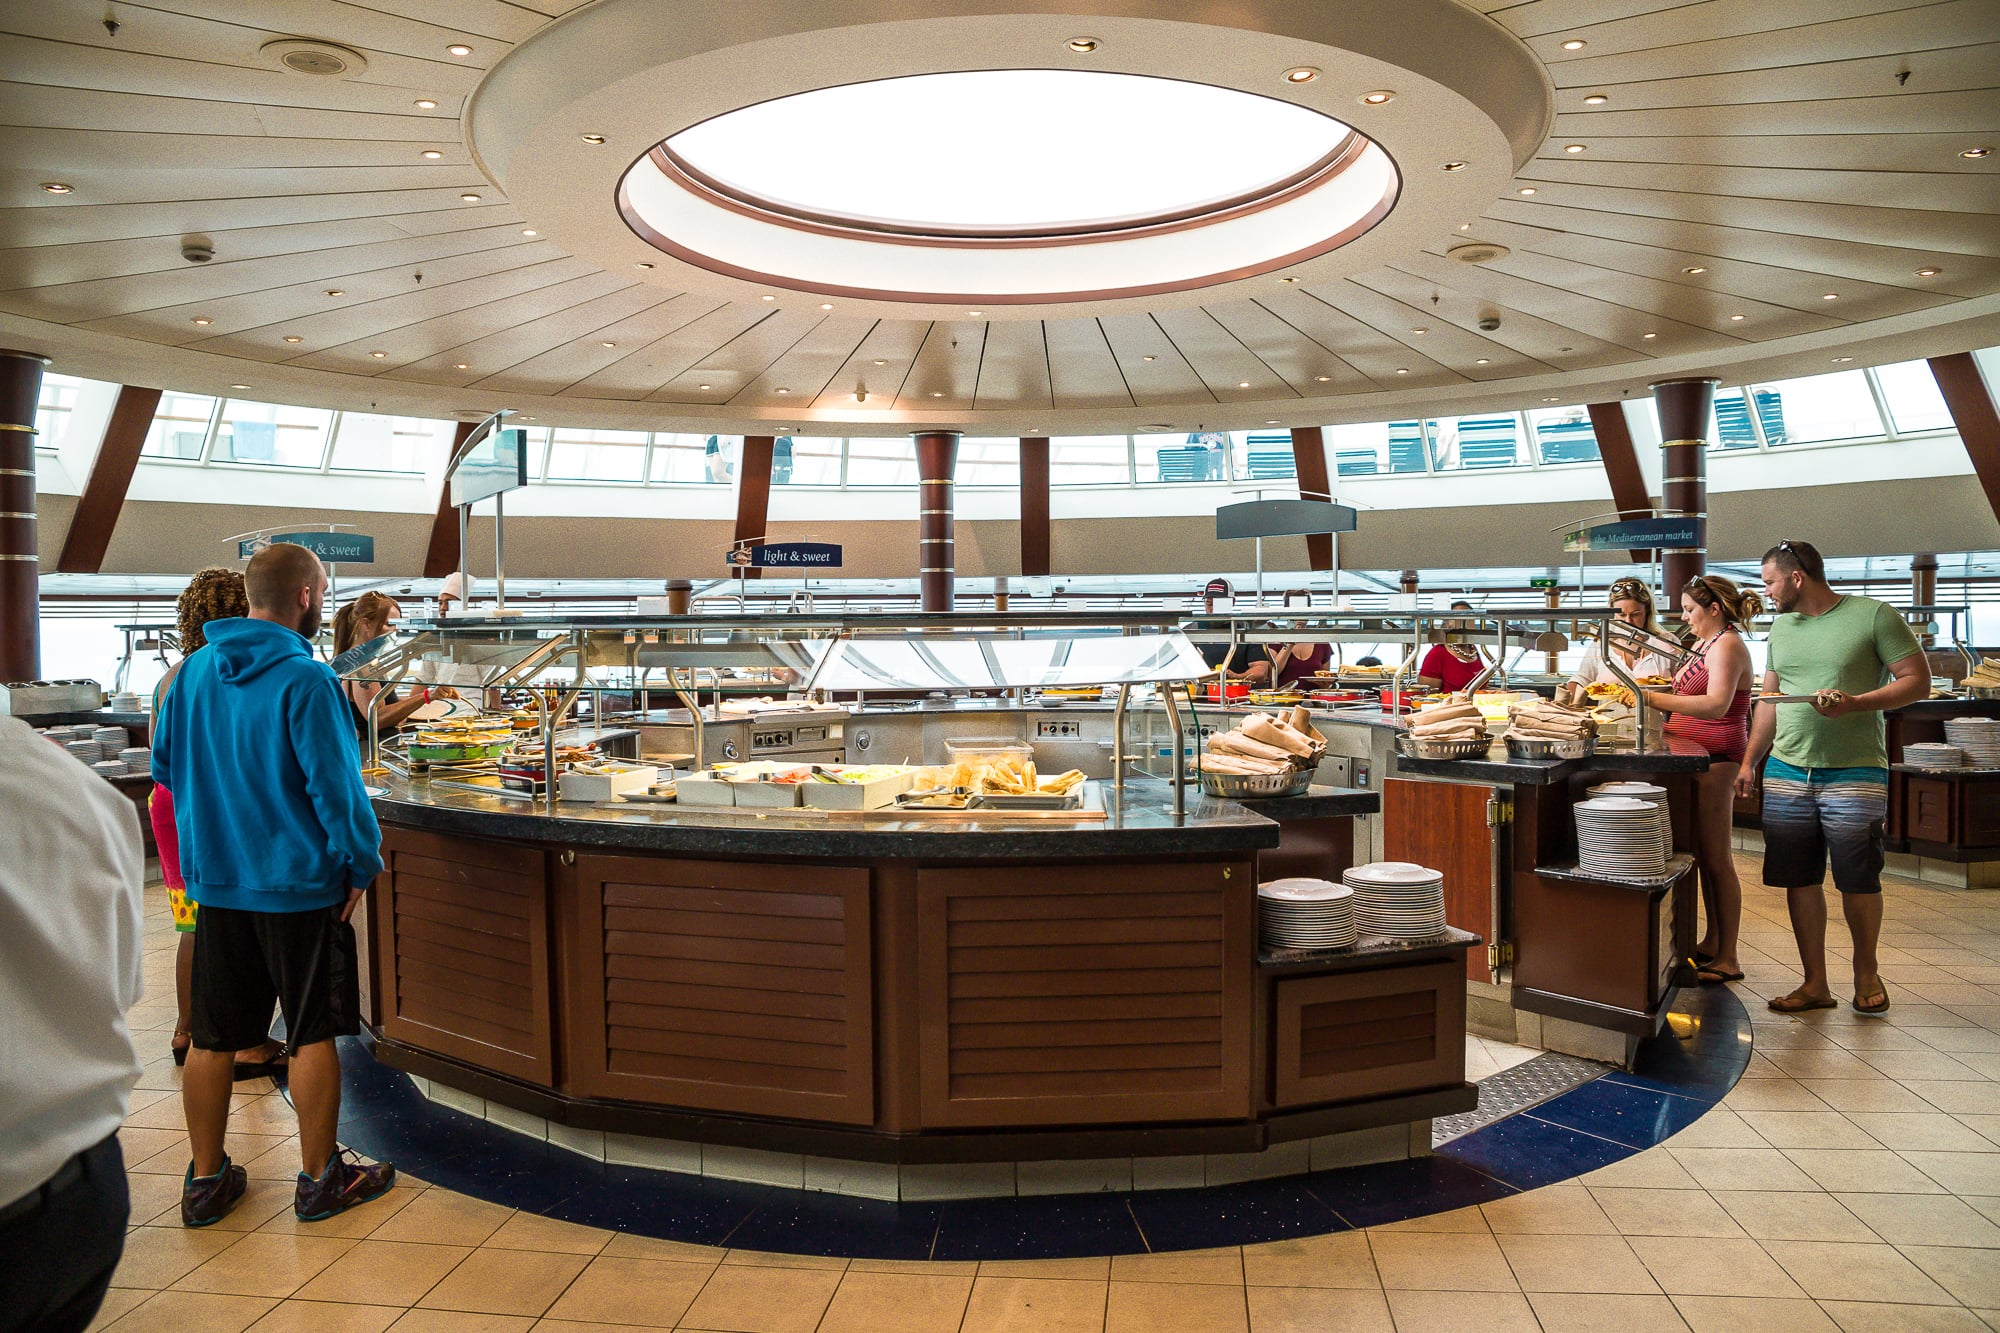 Breakfast Buffet at the Windjammer on the Royal Caribbean